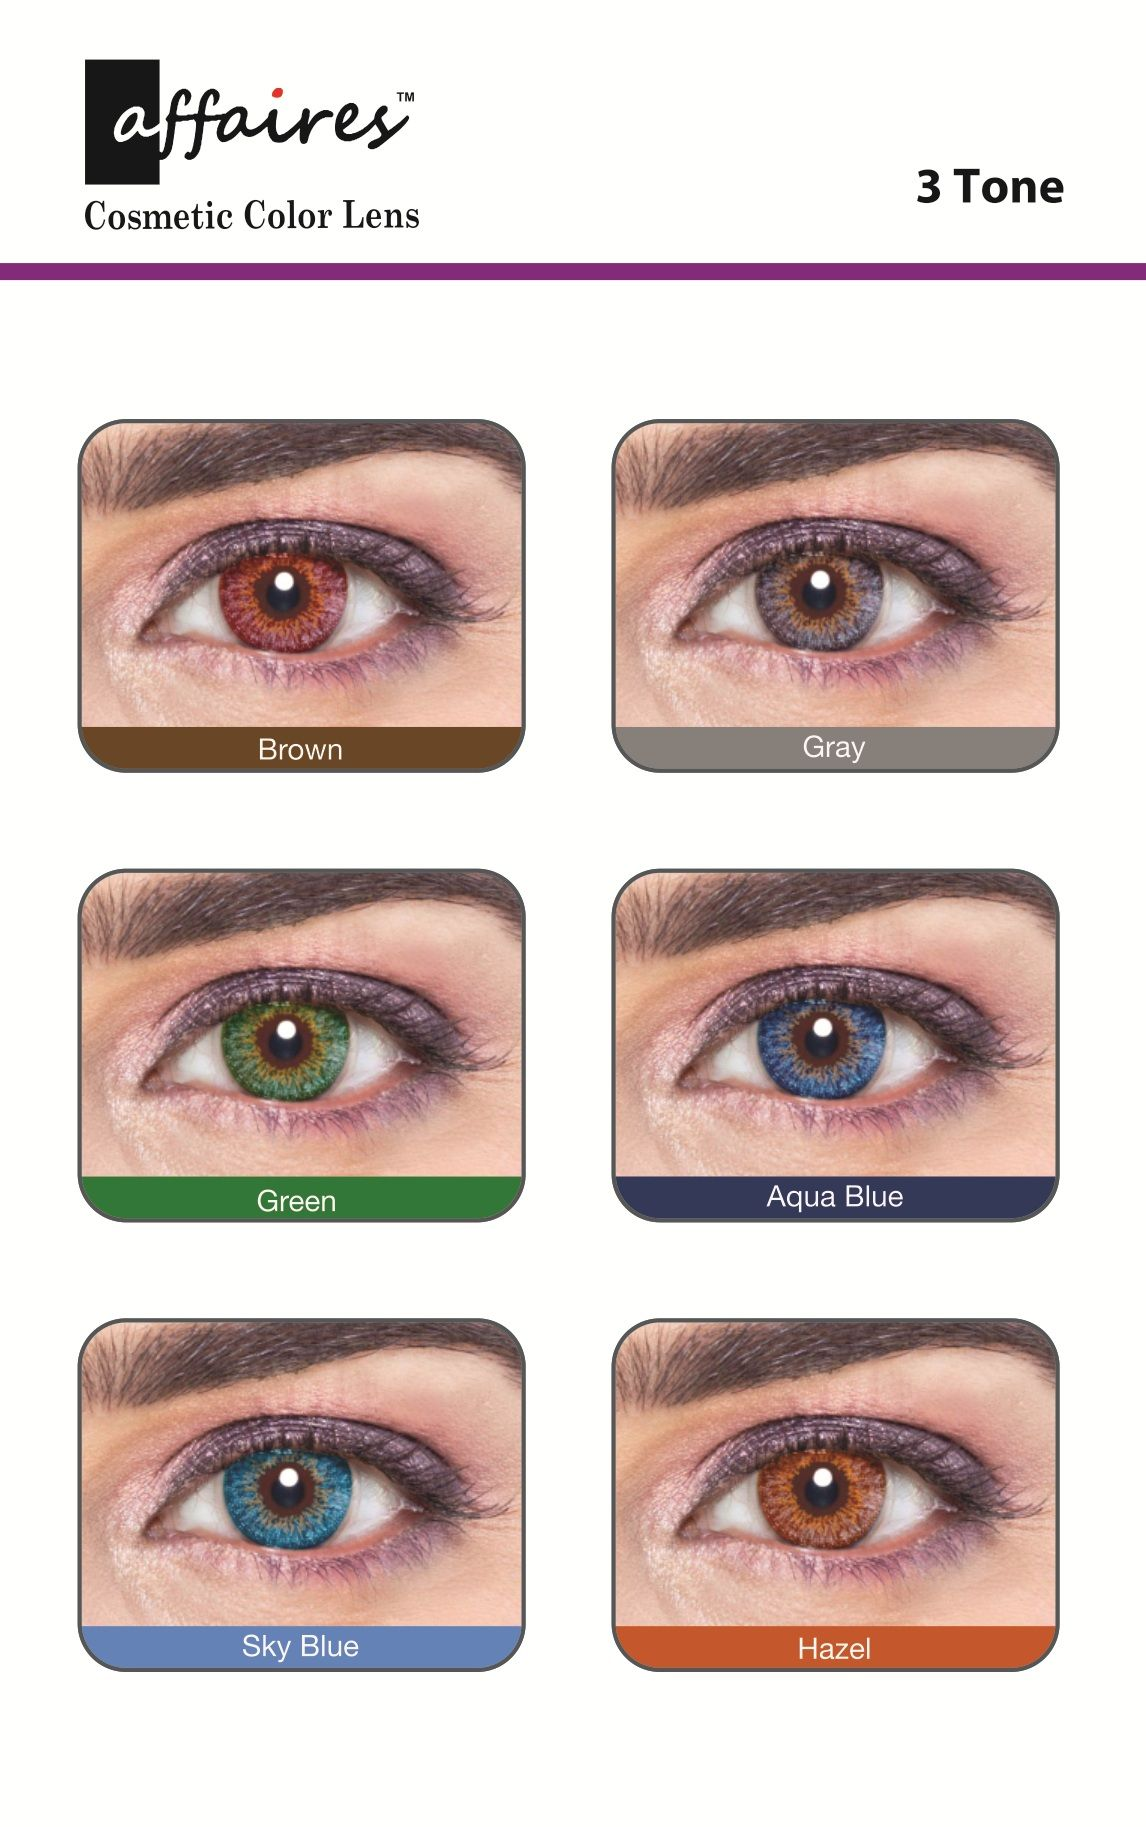 Affaires color contact lenses chart 3 tone affaires color affaires color contact lenses chart 3 tone geenschuldenfo Image collections